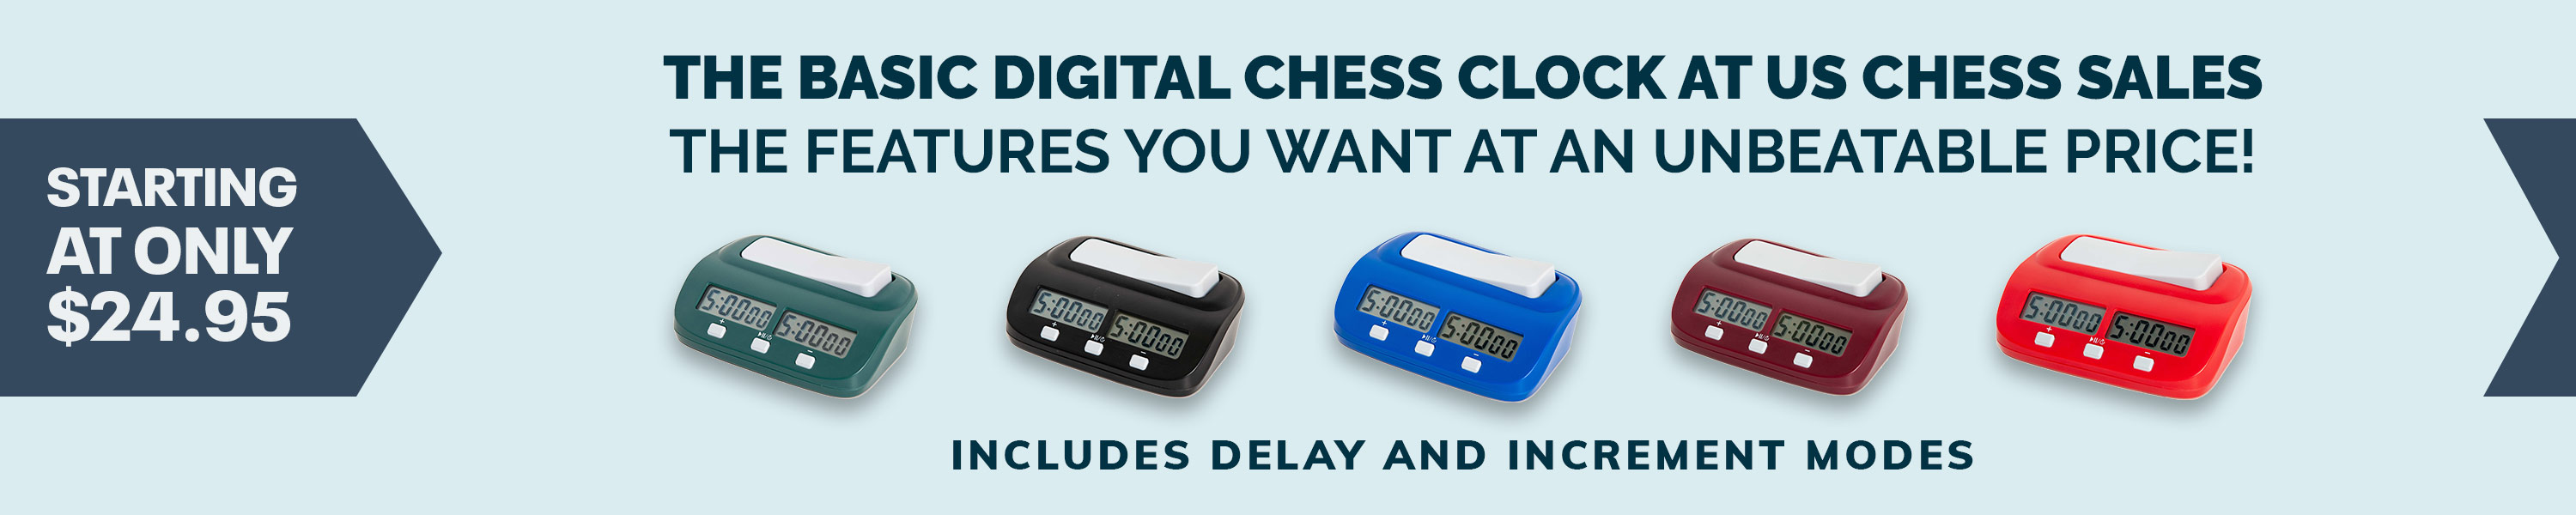 Basic Chess Clocks